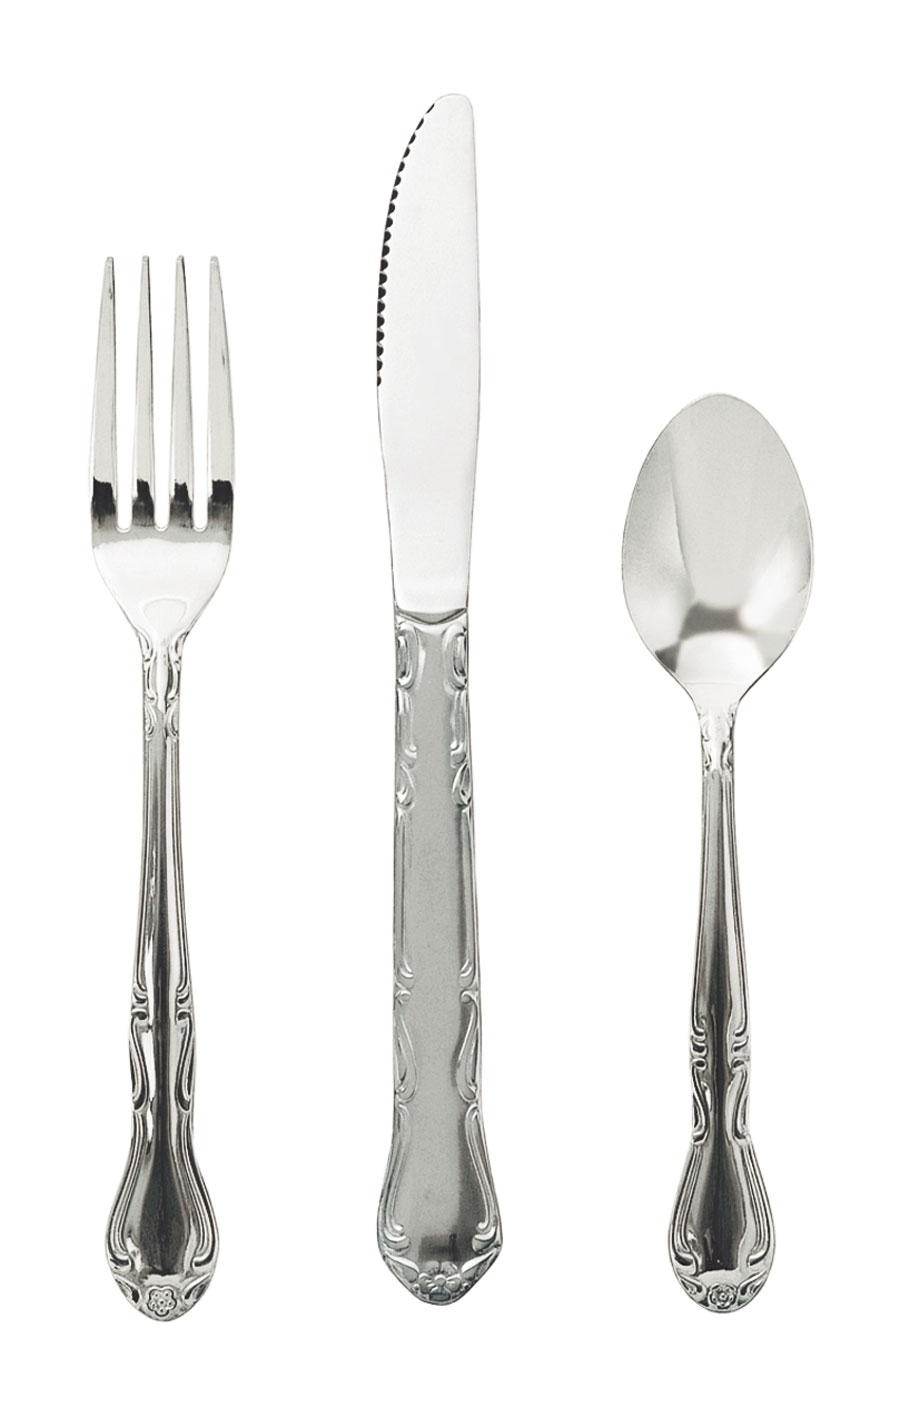 CE-206 Update International - Salad Fork, 18/0 stainless steel, bright polish